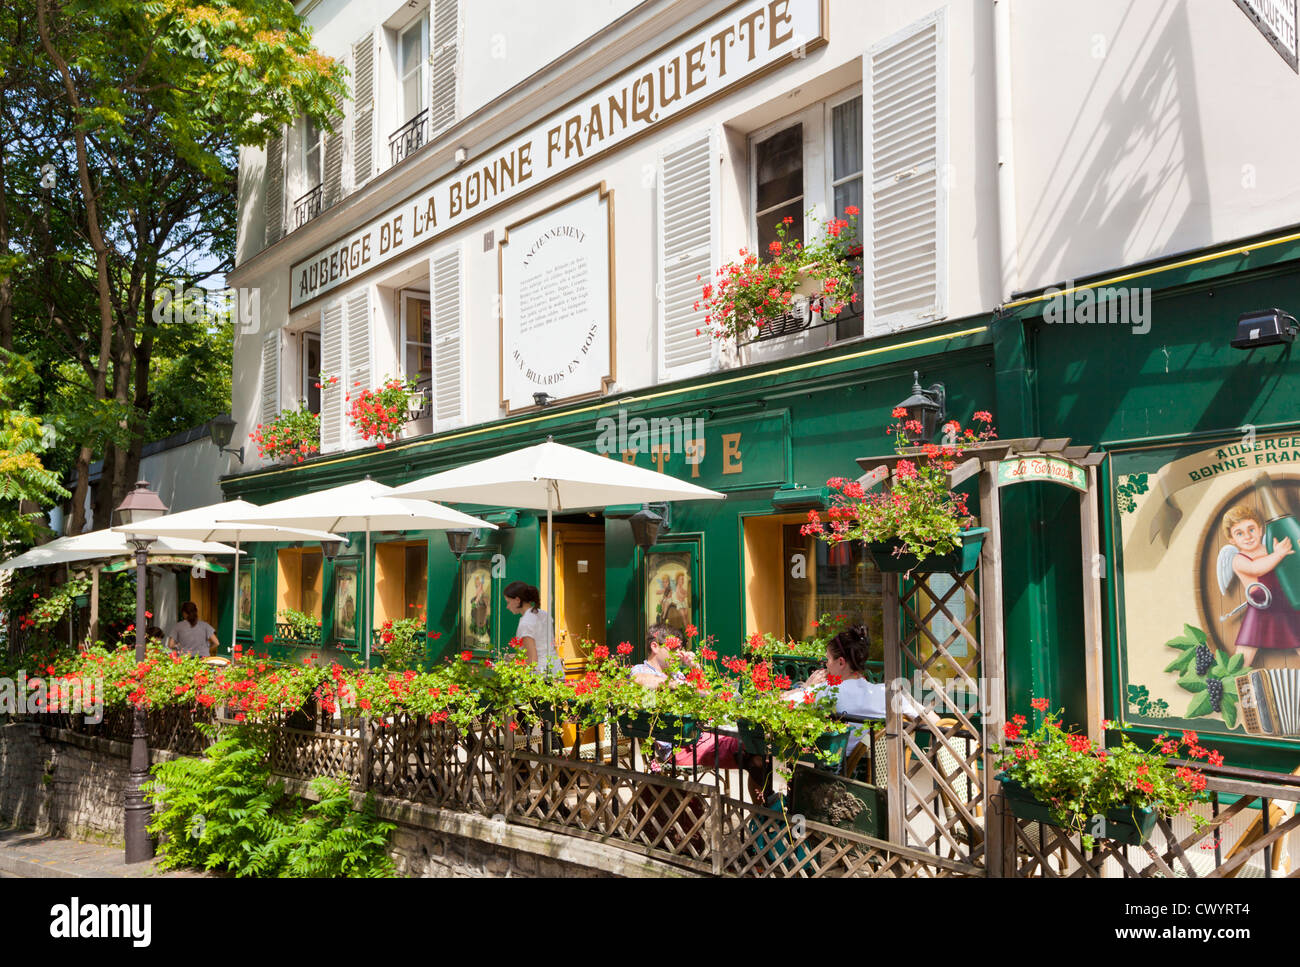 432db4e949 People sitting in a pavement restaurant cafe under umbrellas in Montmartre  Paris France EU Europe -